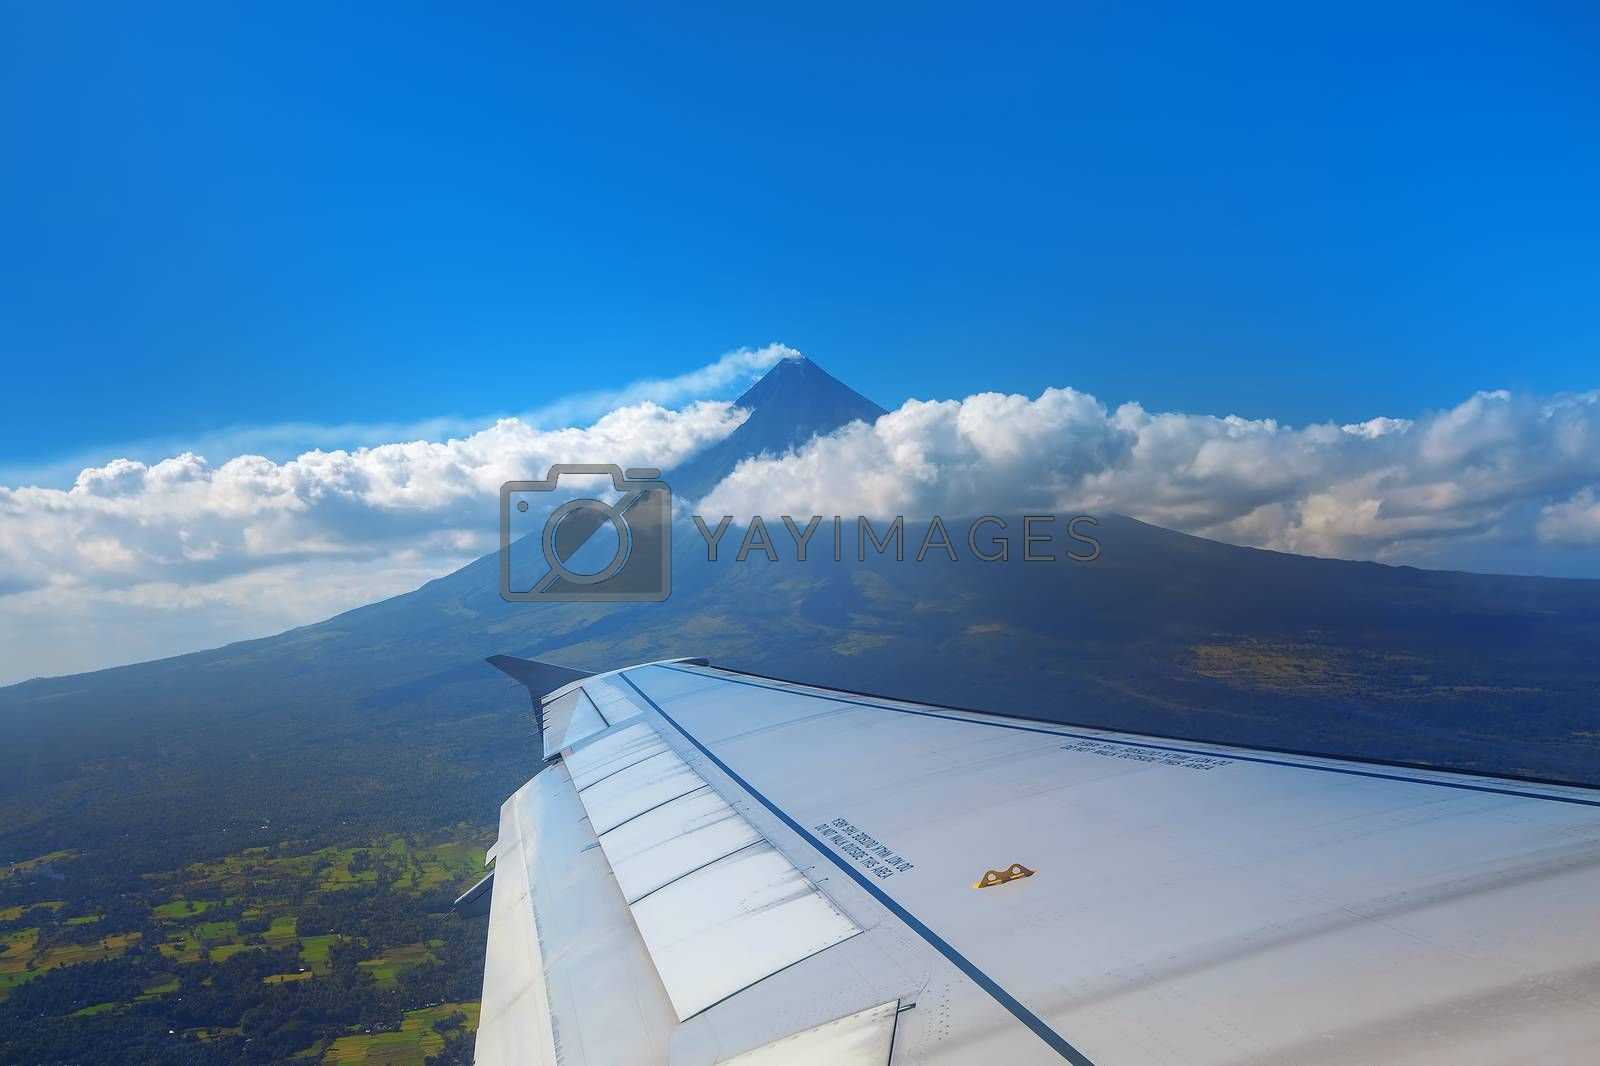 The active Mt Mayon seen from an airplane